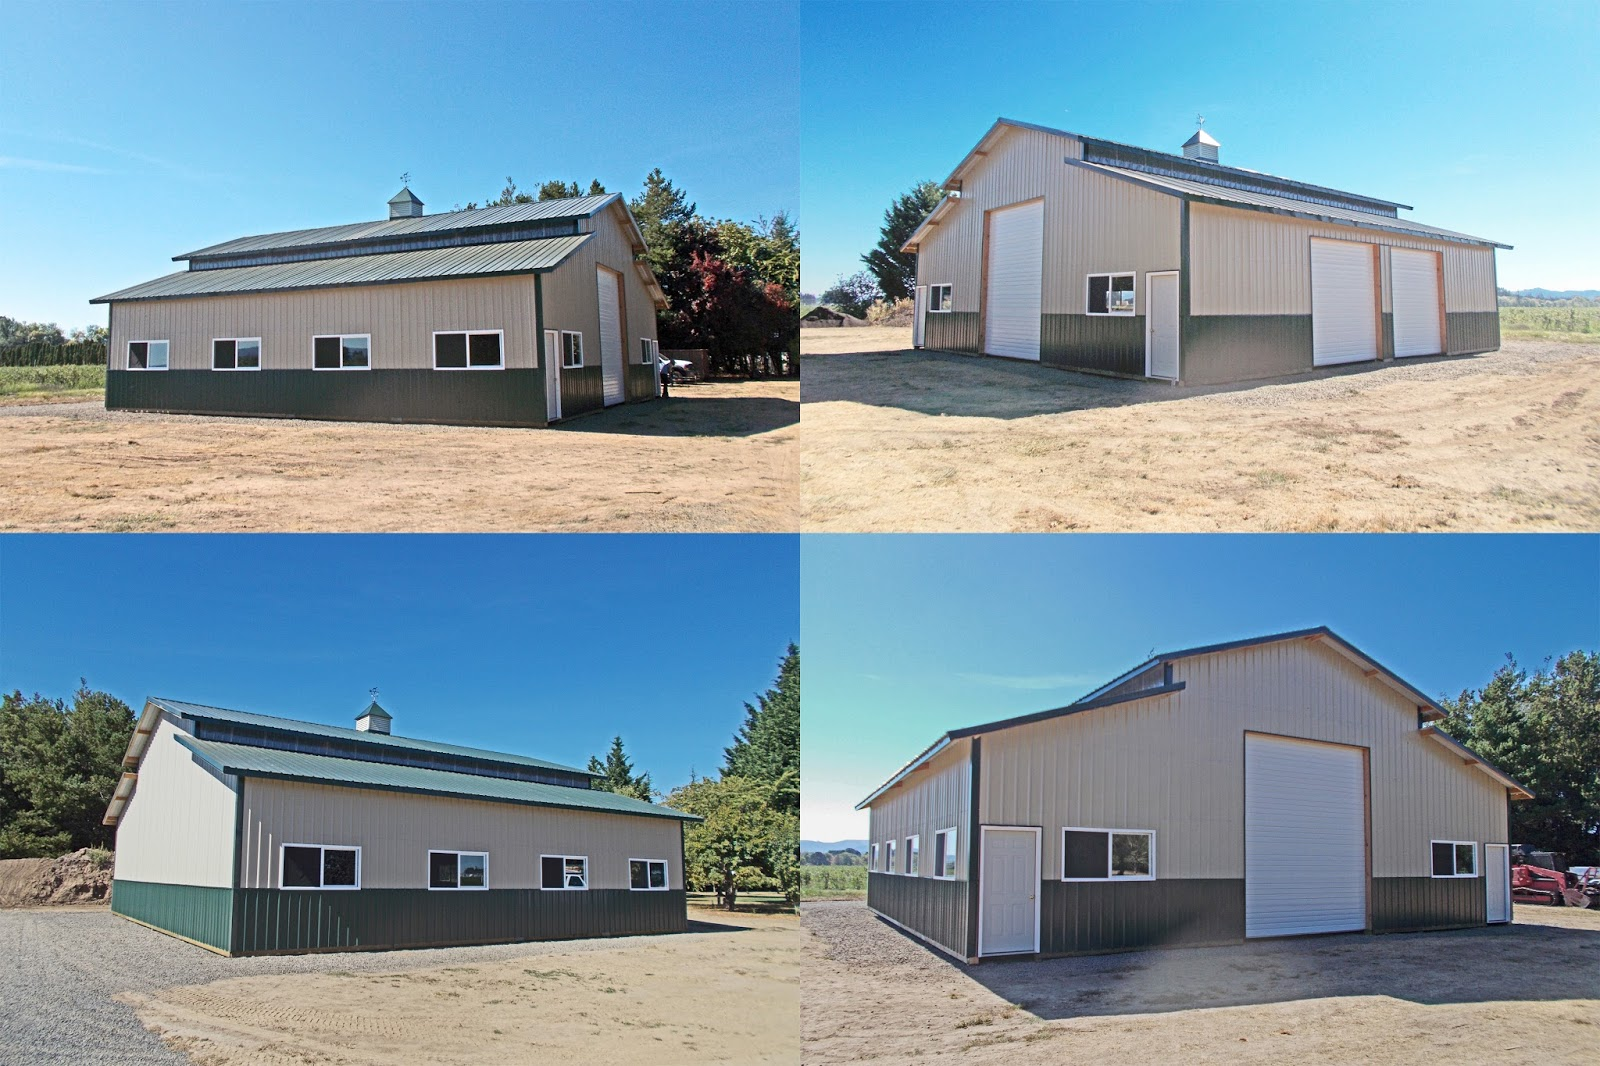 48 39 x 48 39 monitor style pole buildings with 12 39 16 39 and for Monitor style pole barn